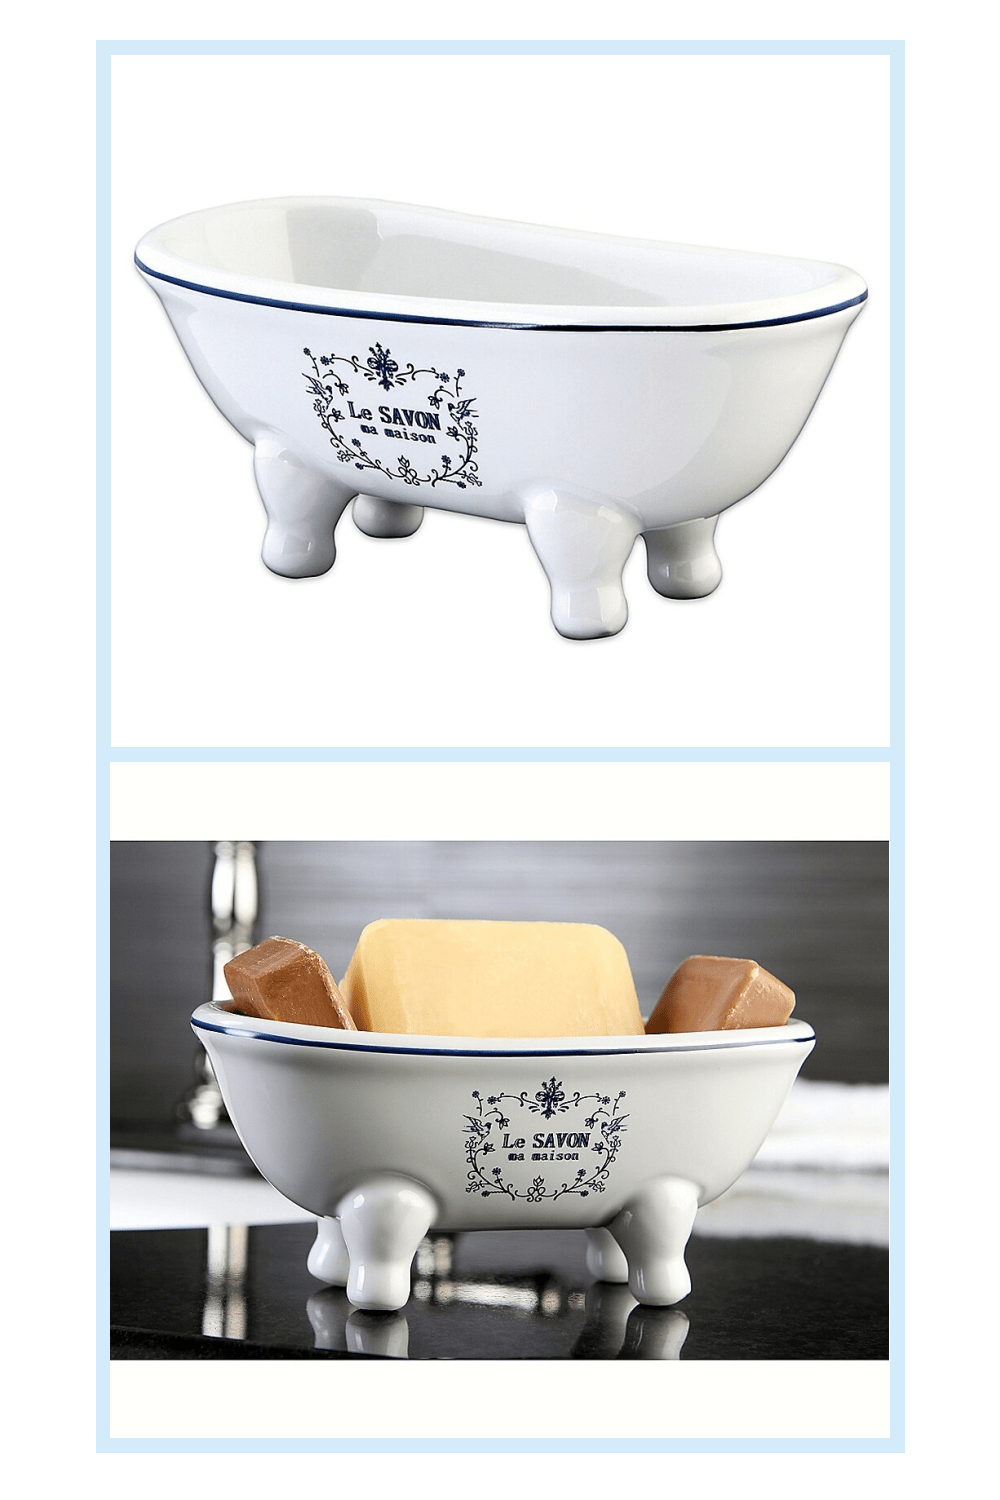 Kingston Brass Le Savon Ceramic Soapdish White - The Kingston Brass Le Savon Ceramic Soapdish is a petite clawfoot tub that will add a whimsical accent anywhere in the home. It's the ideal size to hold decorative soaps, jewelry, greenery, all your trinkets and treasures.